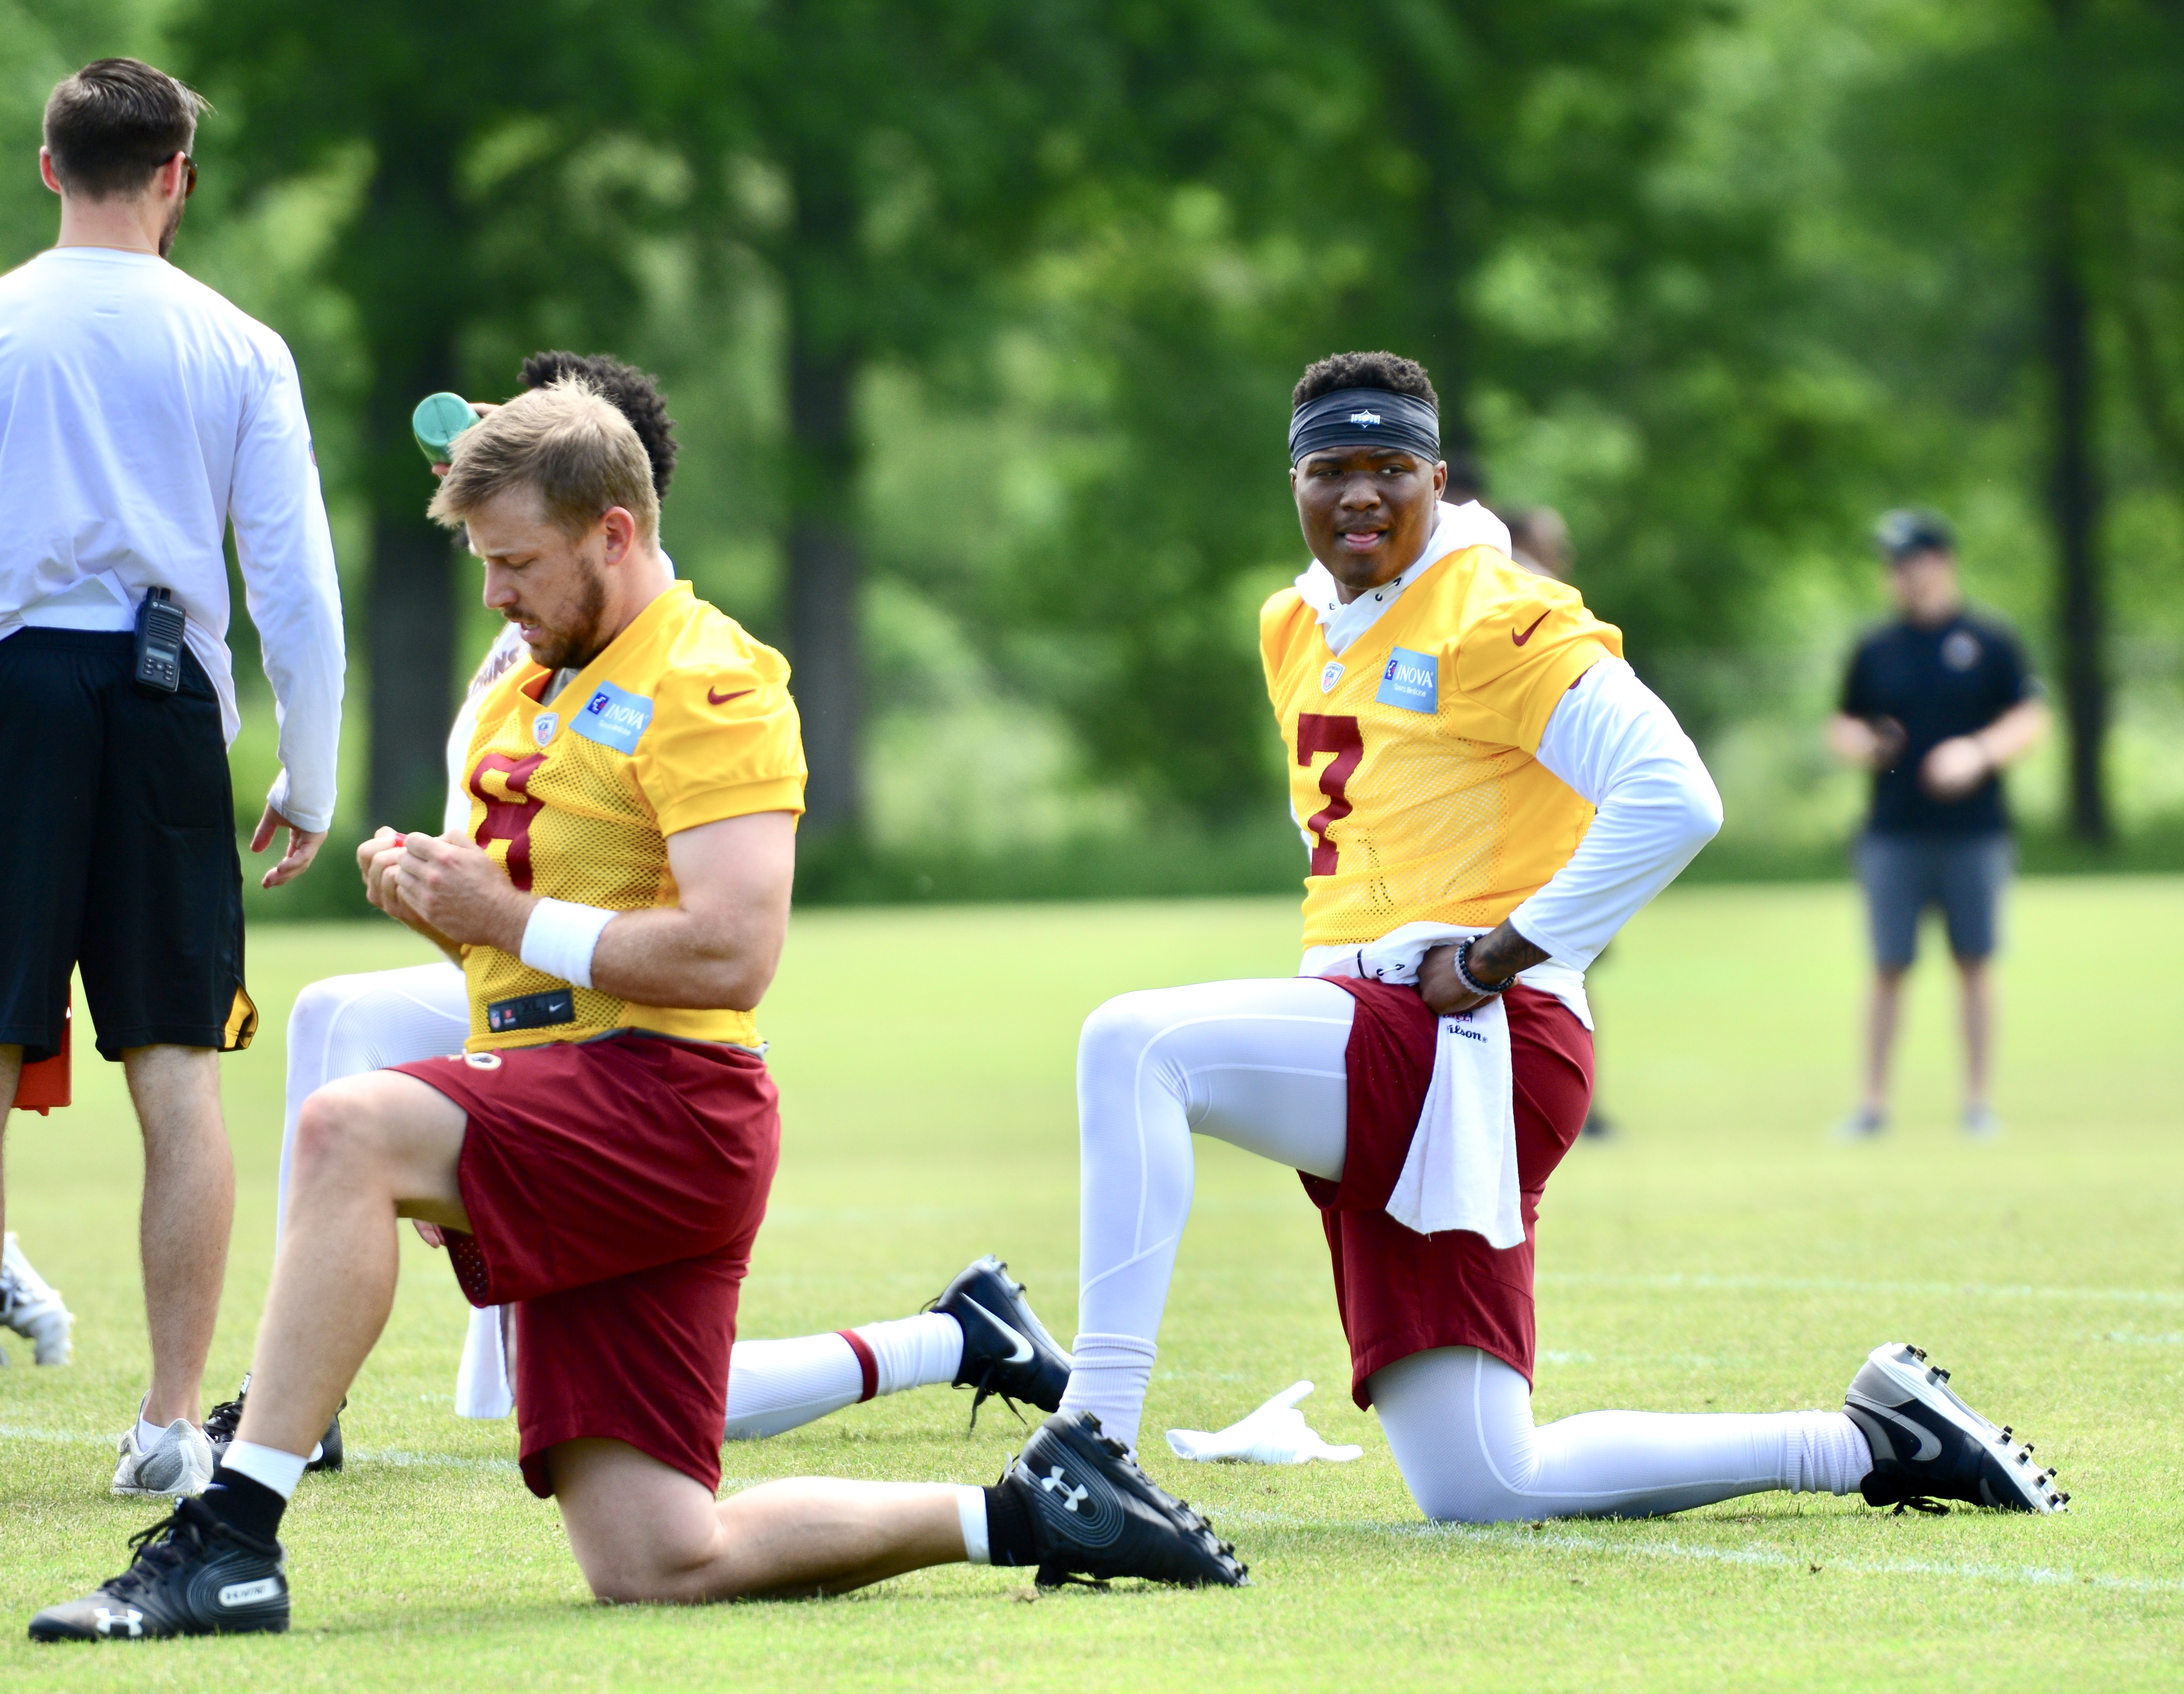 Redskins OTA Quotes: Haskins and Keenum